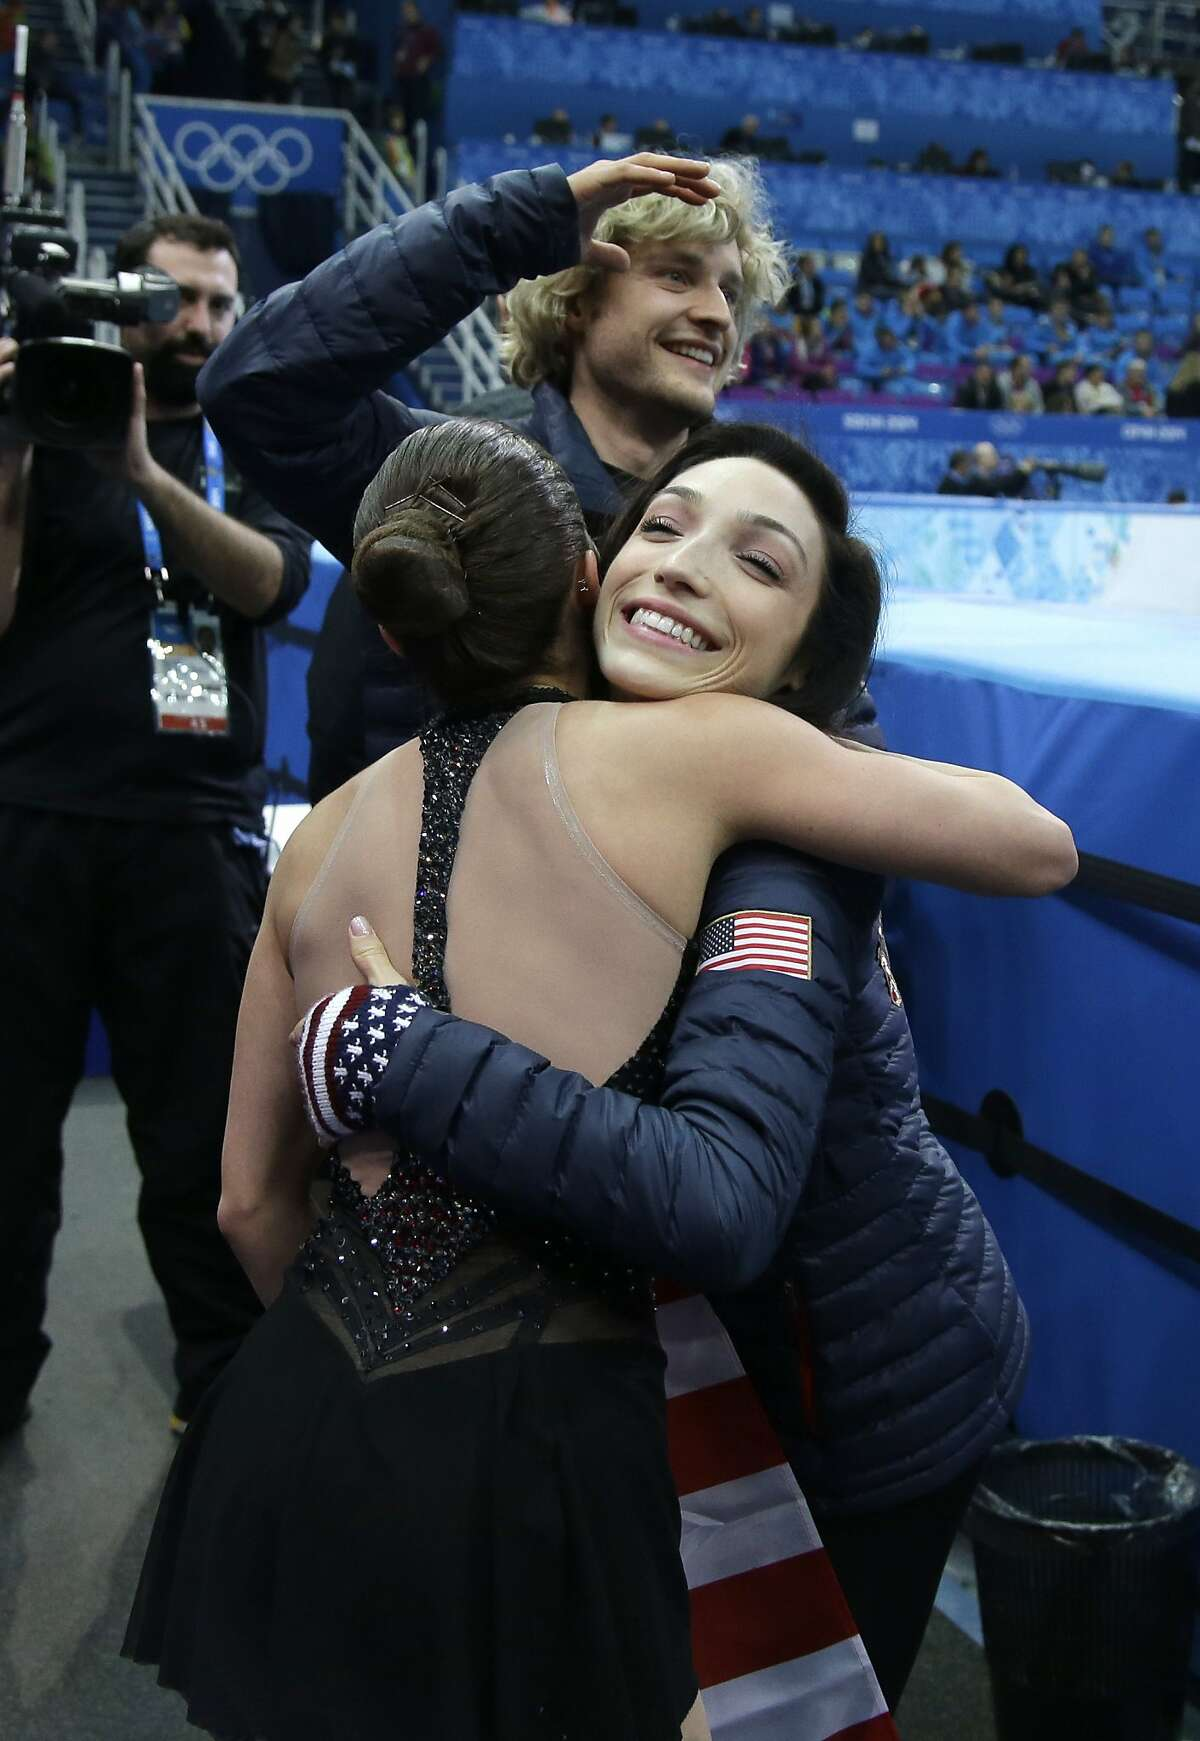 US US Marissa Castelli (C) is congratulated by US Meryl Davis (R) and US Charlie White (top) in the kiss and cry zone the Figure Skating Pairs Team Short Program at the Iceberg Skating Palace during the Sochi Winter Olympics on February 6, 2014. AFP PHOTO / POOL / DARRON CUMMINGSDARRON CUMMINGS/AFP/Getty Images